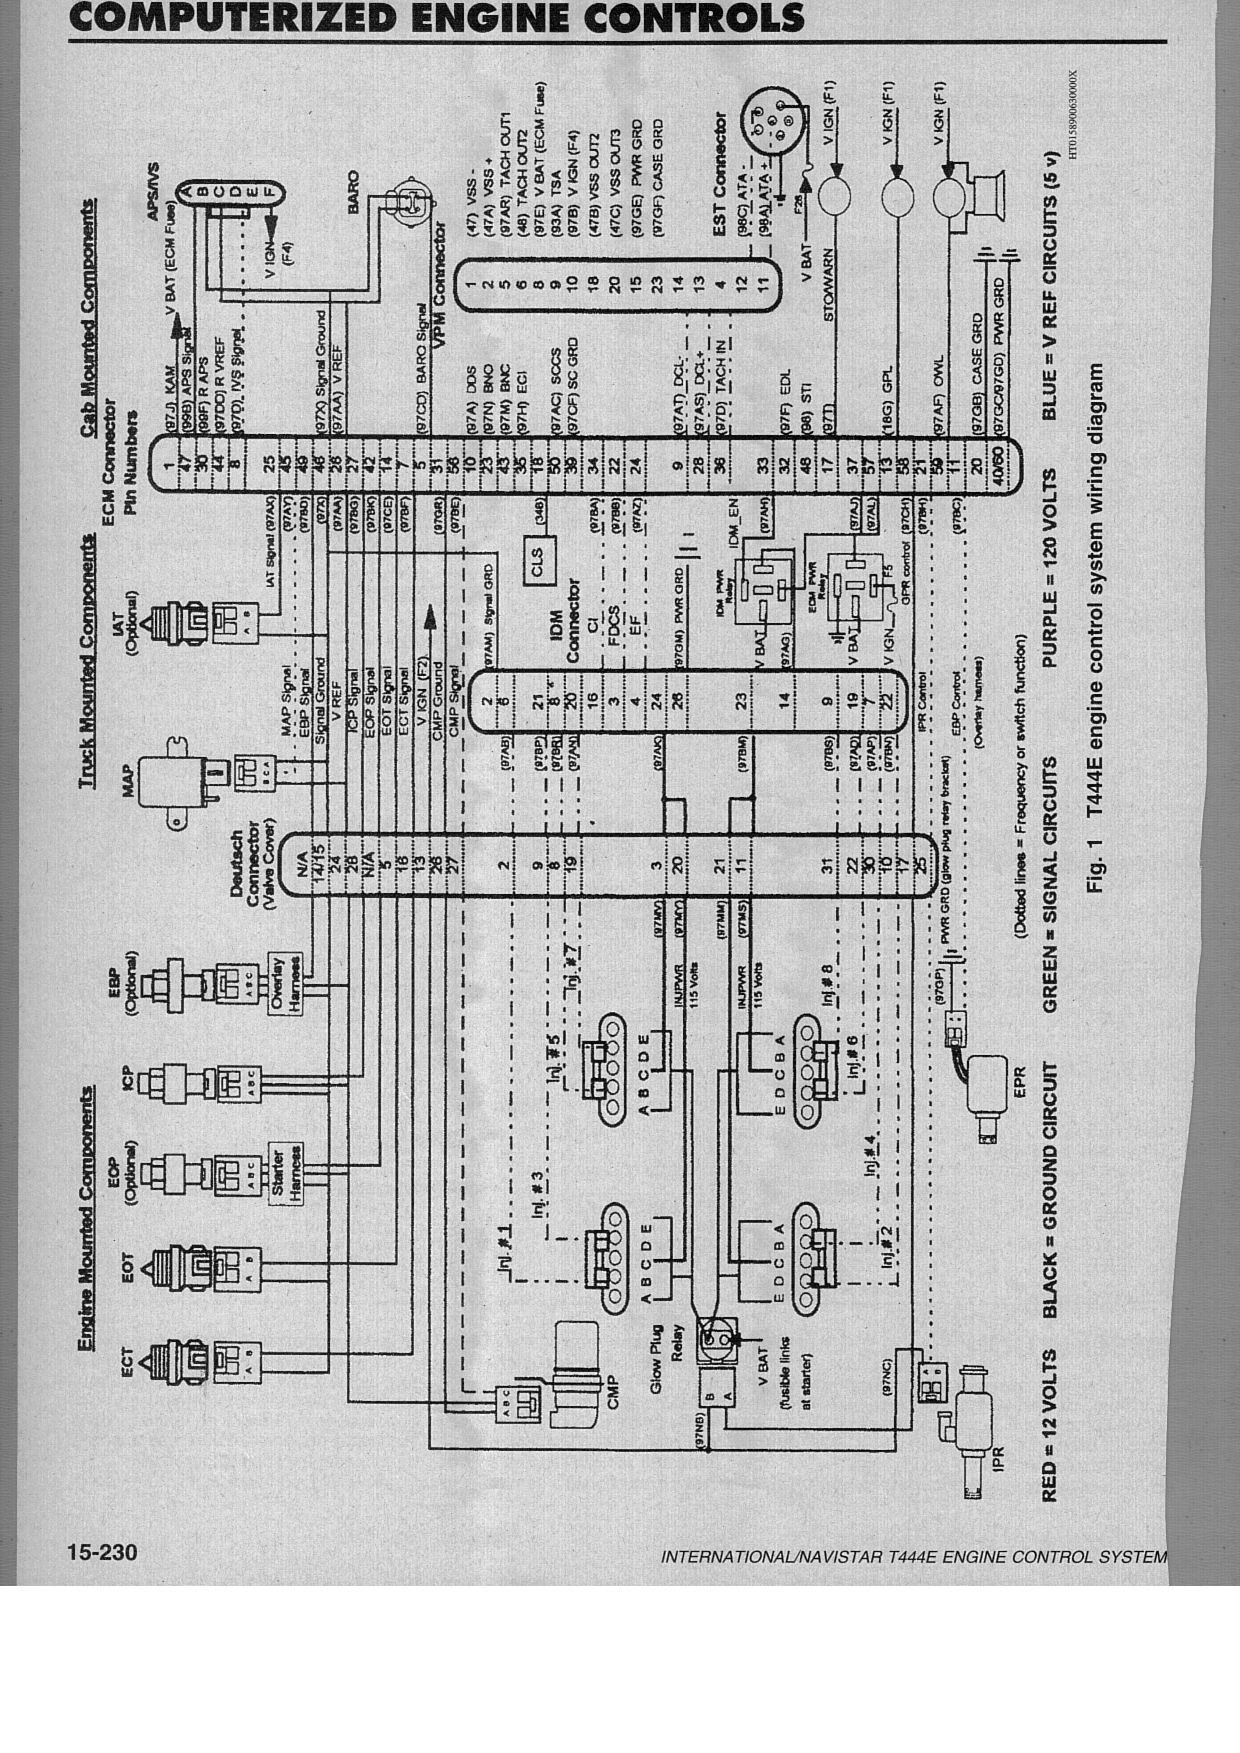 Ecm International Diagrama - Wiring Diagram And Schematics ... on international abs wiring diagram, international engine wiring diagram, international battery diagram, international radio wiring diagram, international blower motor diagram,